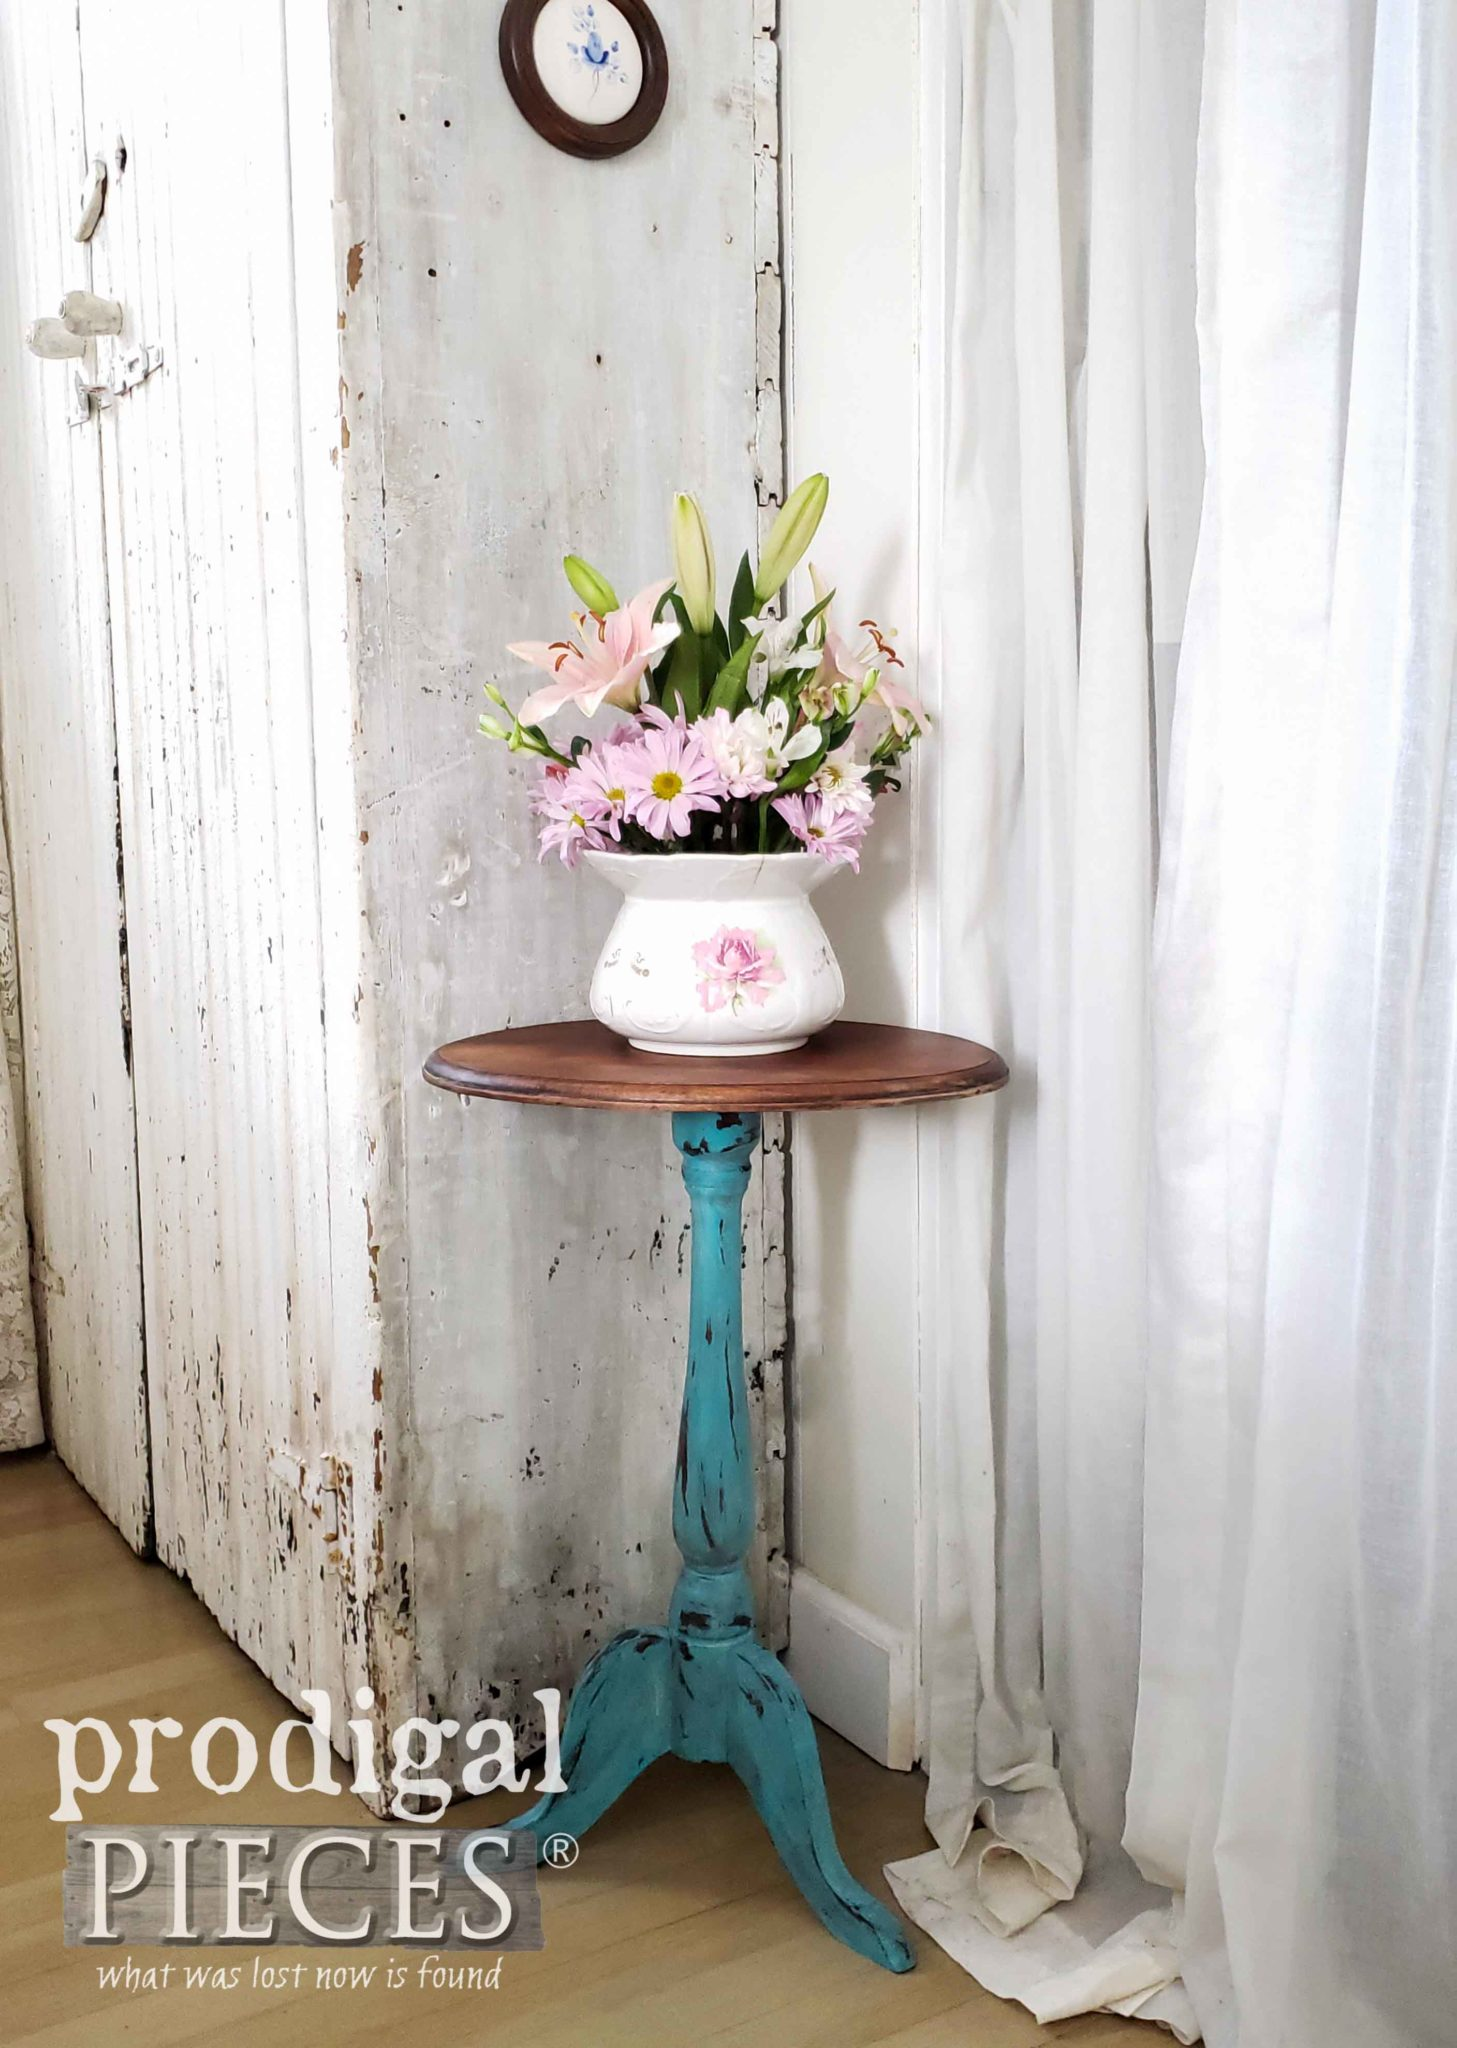 Chippy Aqua Blue Vintage Accent Table for Farmhouse Cottage Style Decor | DIY video by Larissa of Prodigal Pieces at prodigalpieces.com #prodigalpieces #furniture #home #diy #homedecor #farmhouse #homedecorideas